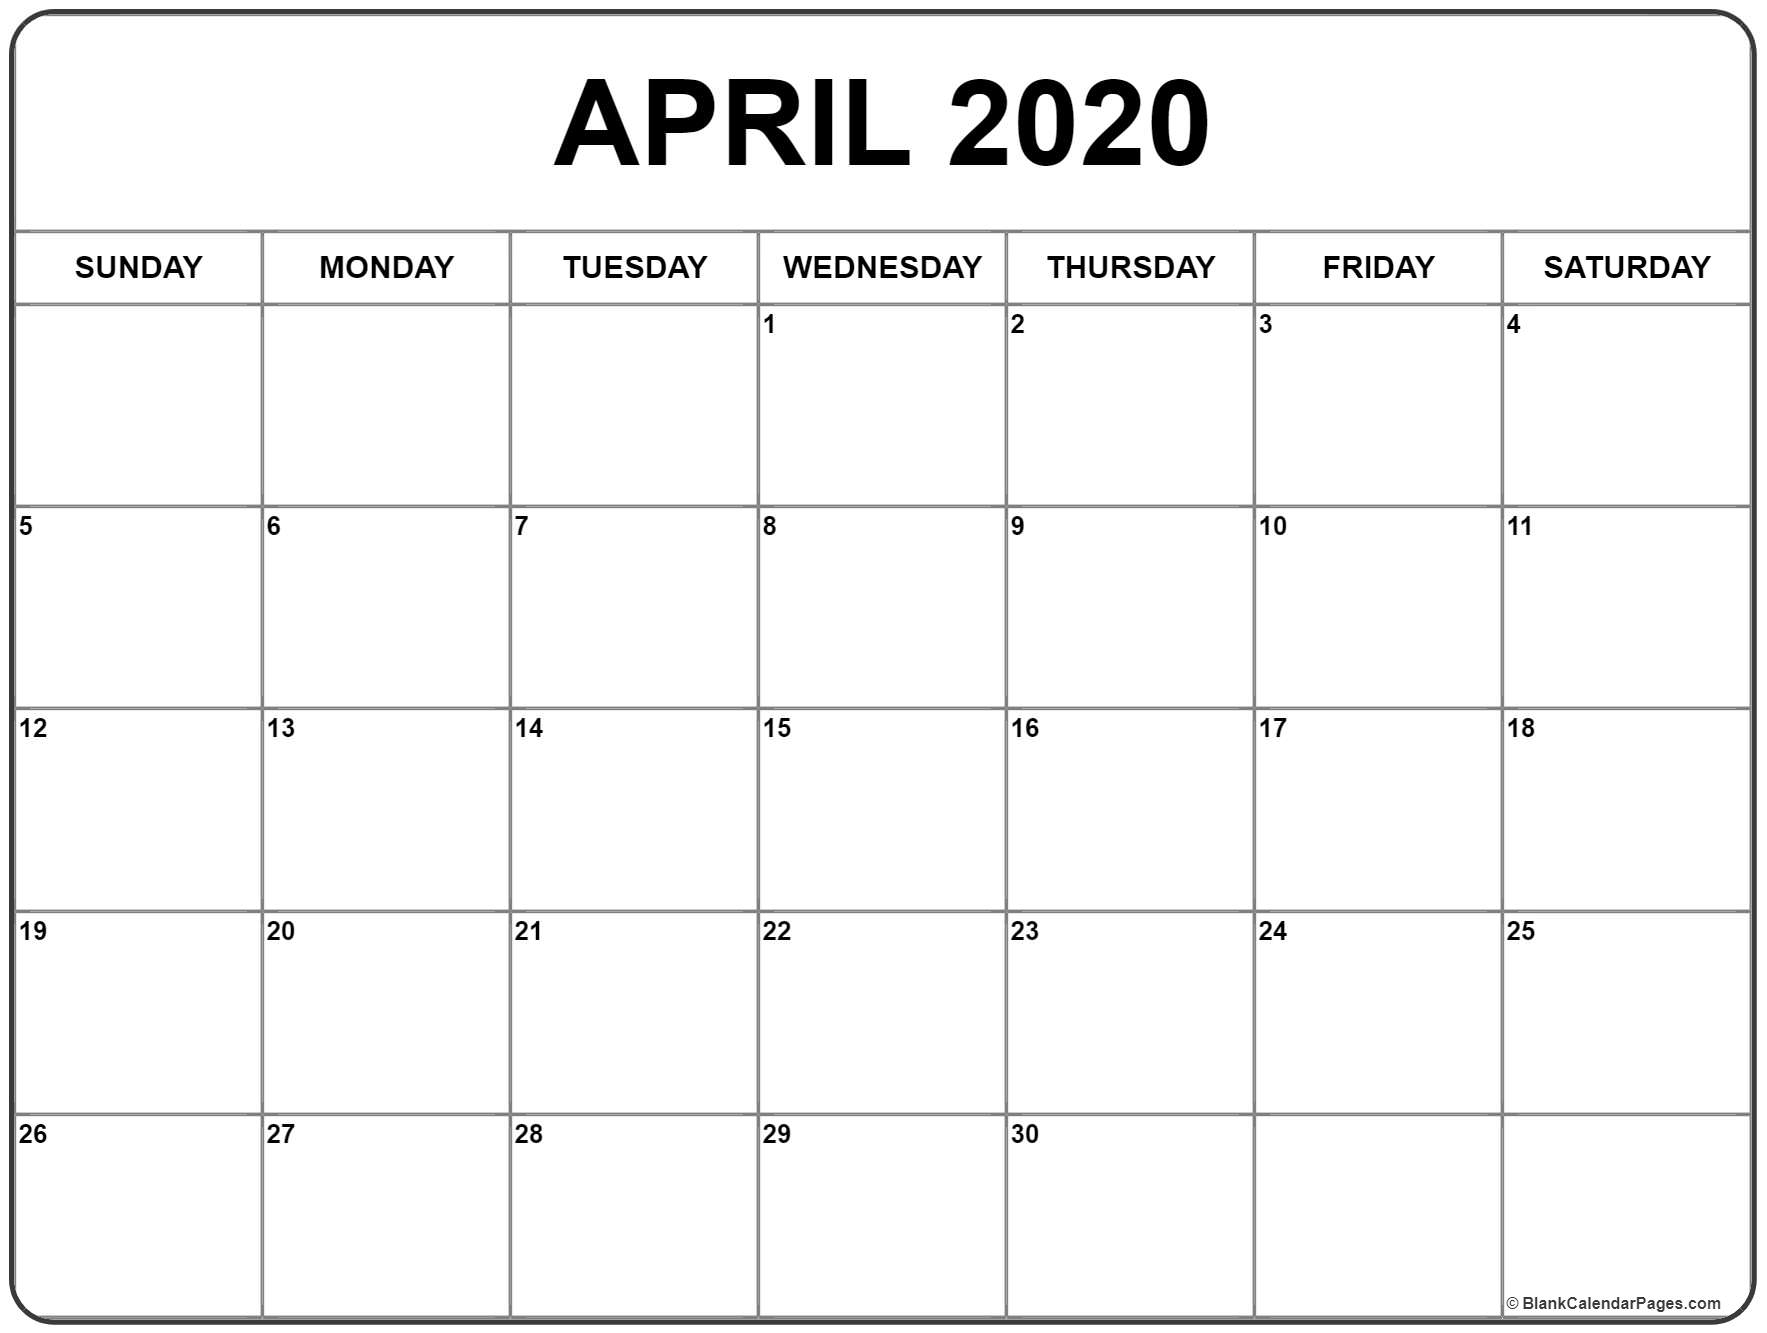 April 2020 Calendar Printable With Holidays - Wpa.wpart.co